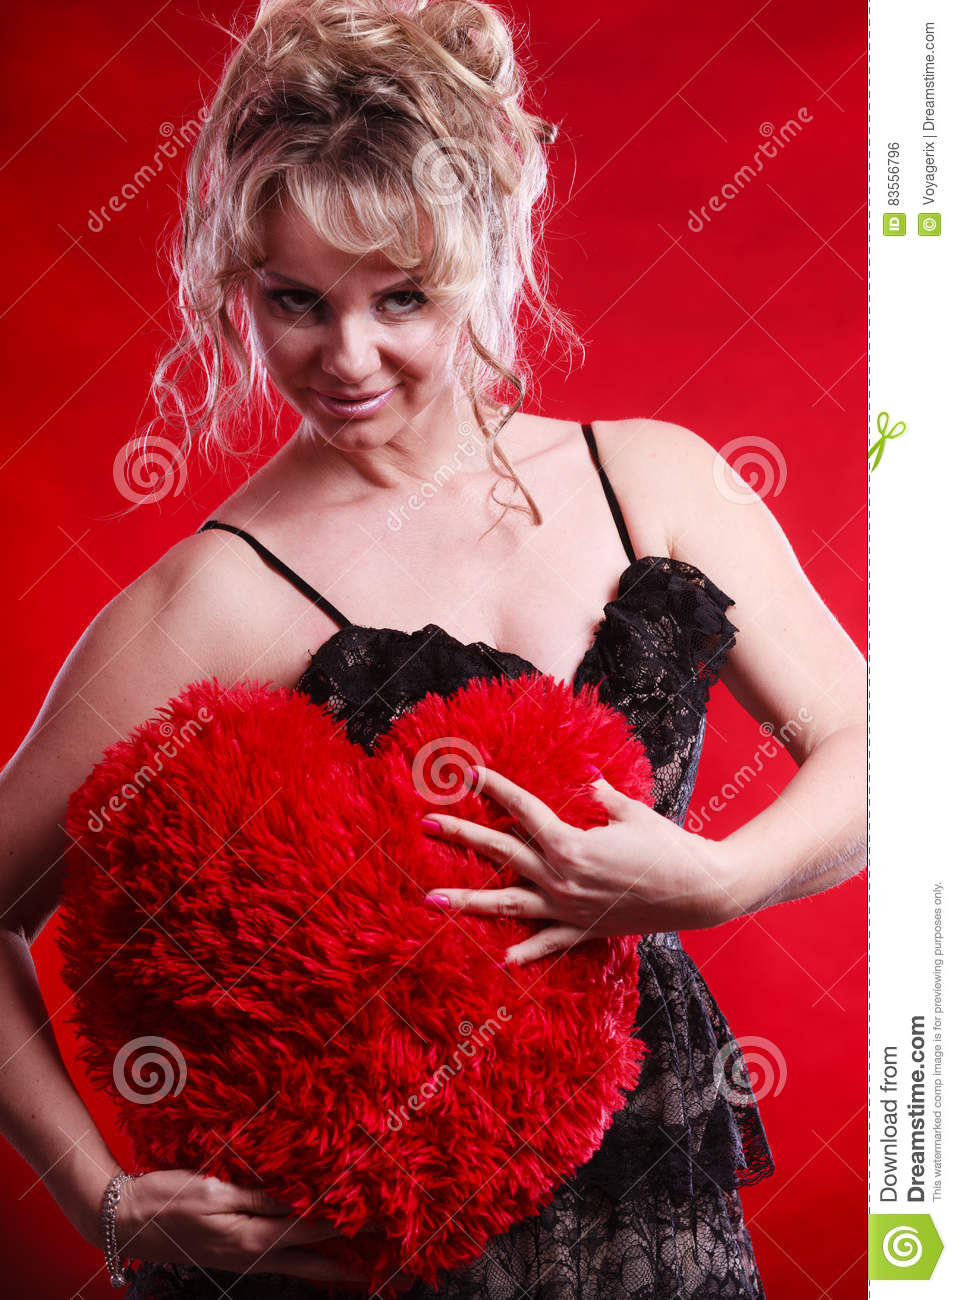 mature woman hug big red heart stock photo - image of heart